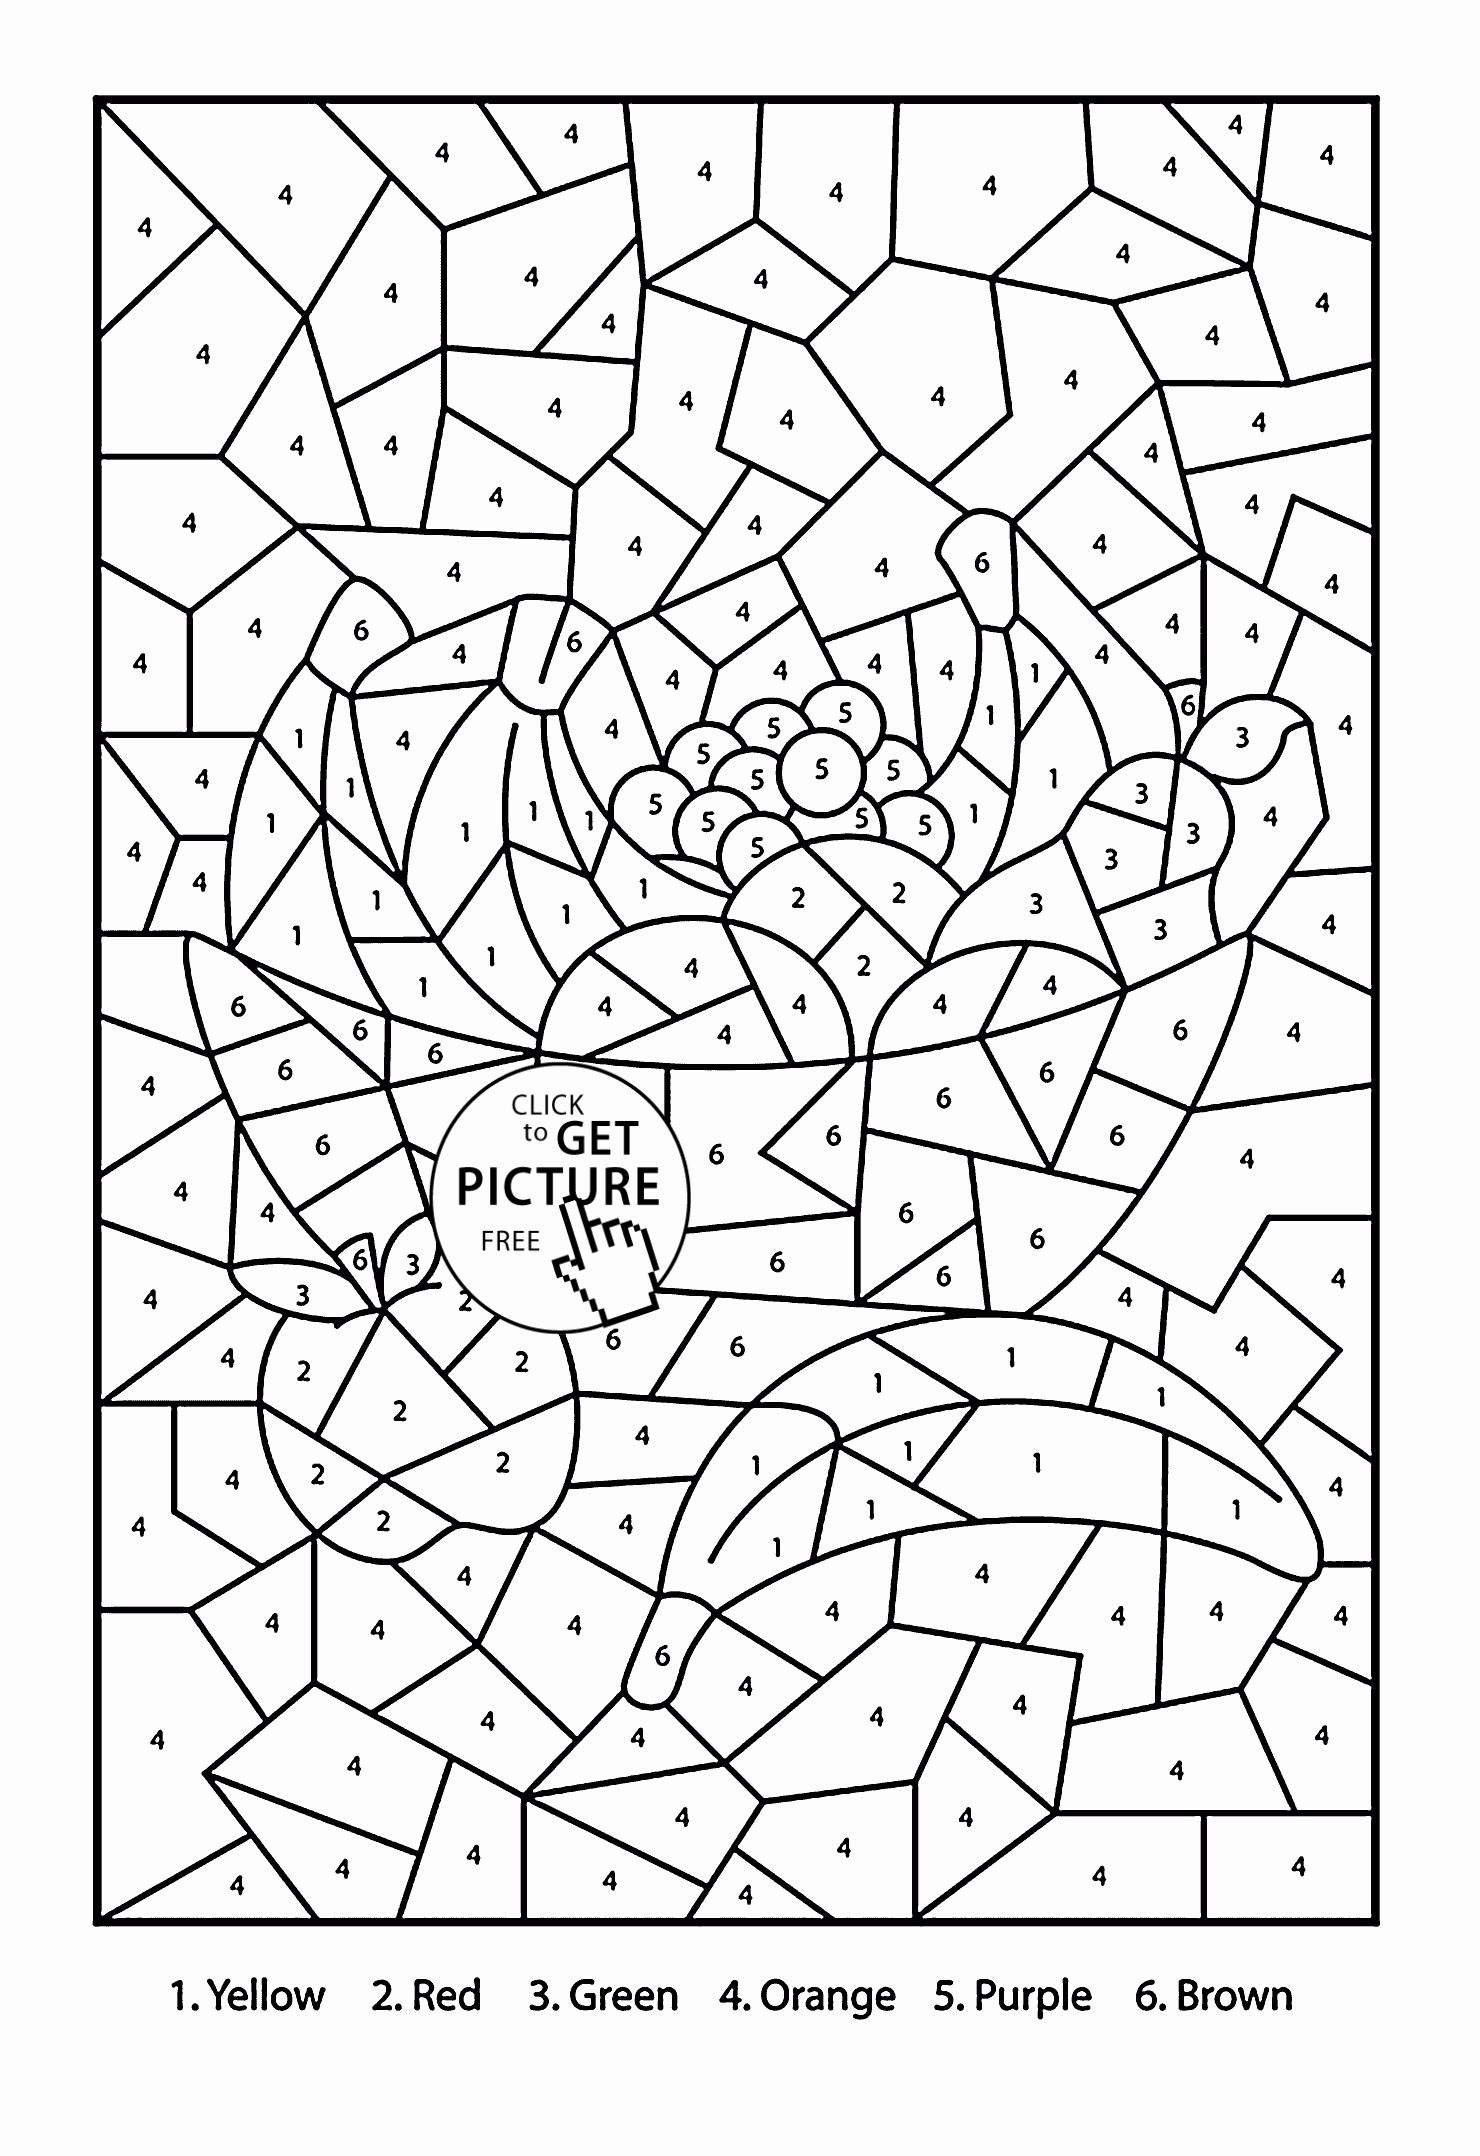 Fruits Coloring Worksheets For Kindergarten New Color By Number Fruits Coloring Page For Kids Ed Kids Coloring Books Online Coloring Pages Fruit Coloring Pages [ 2156 x 1480 Pixel ]